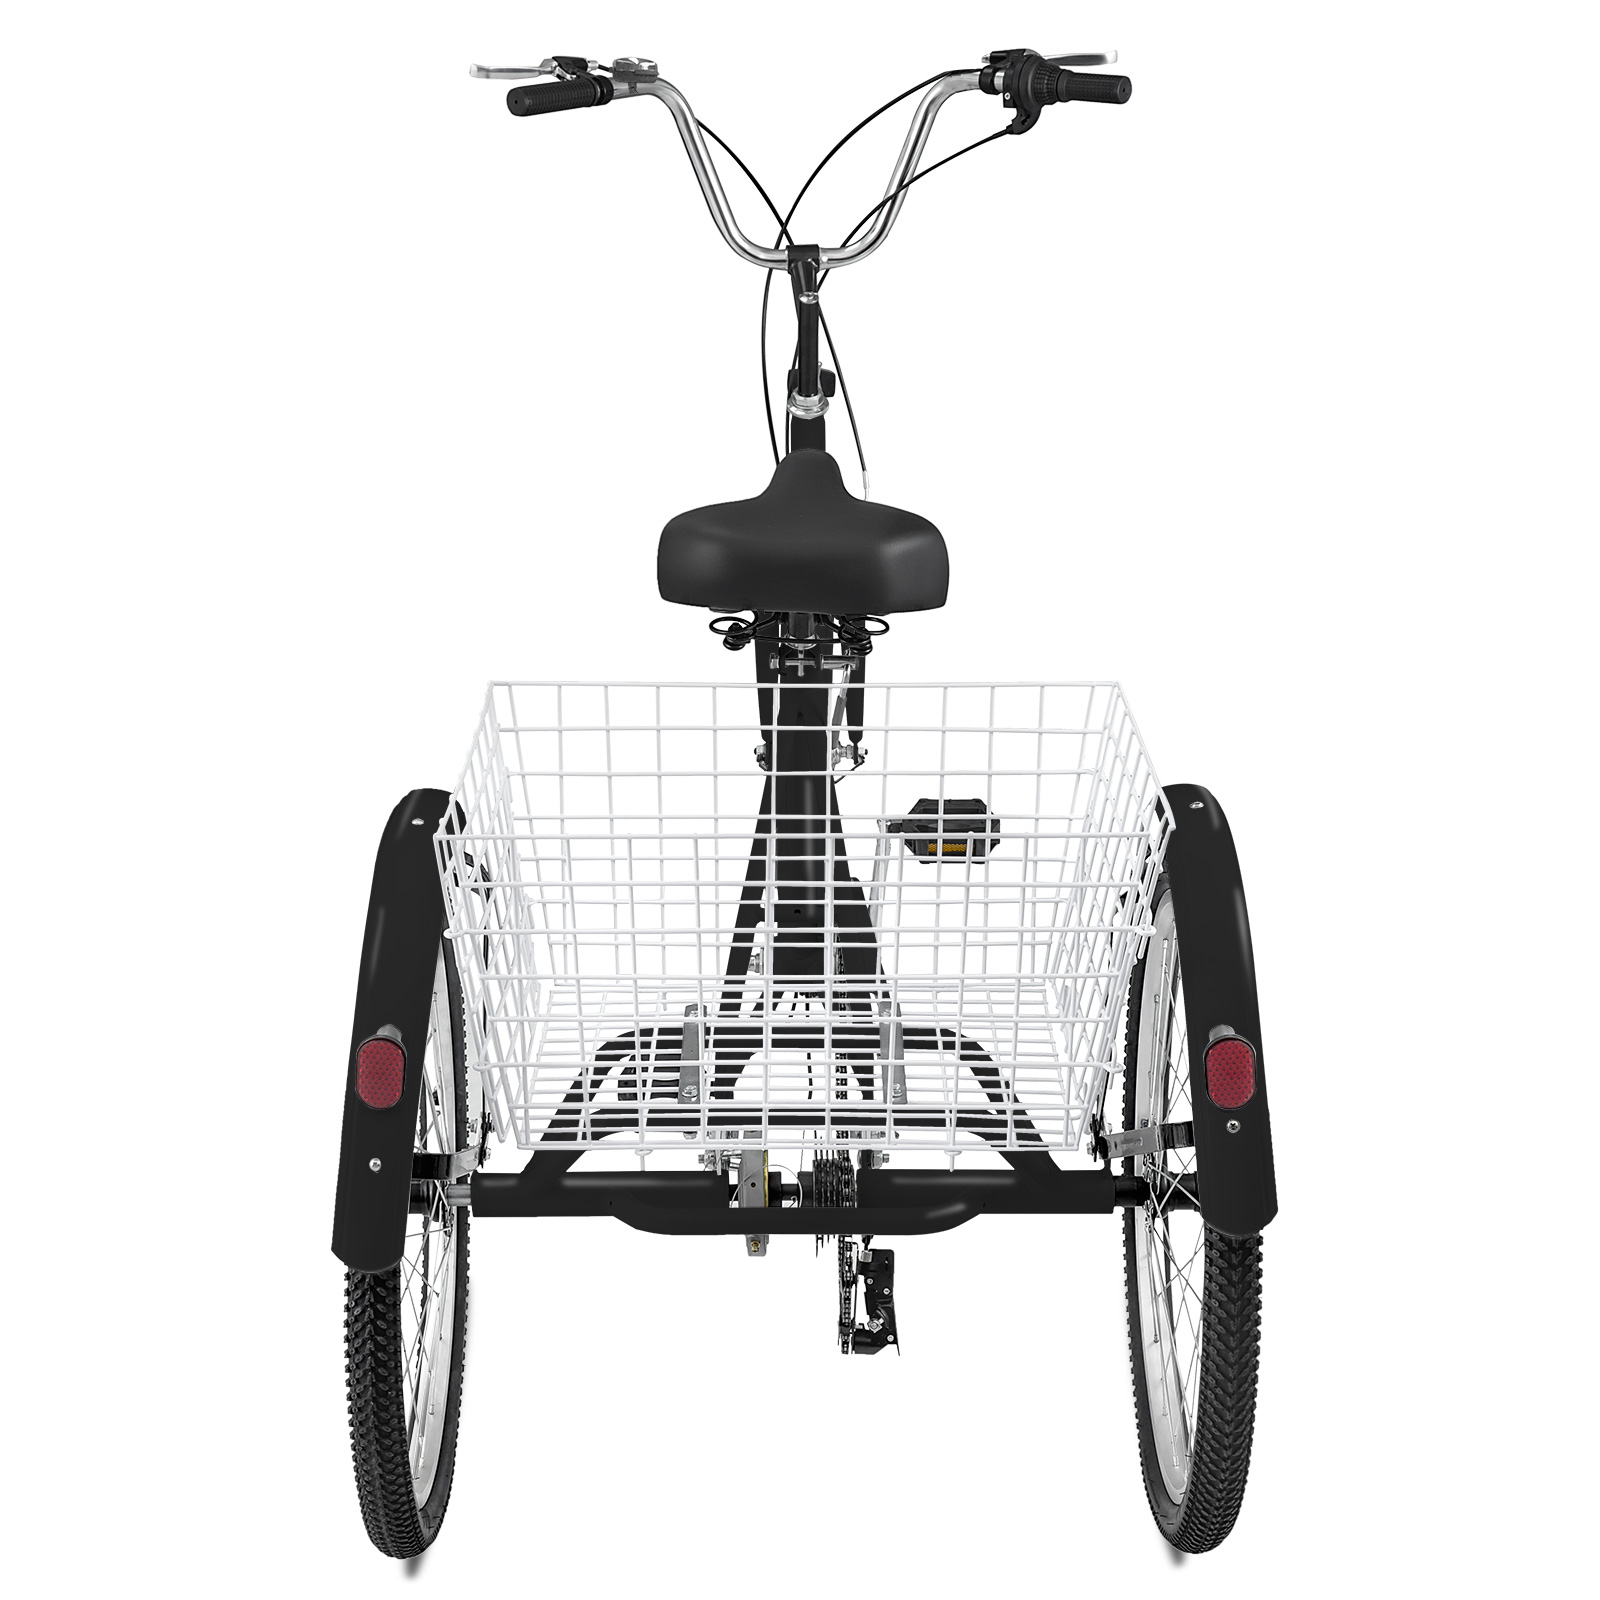 20-24-26-034-Adult-Tricycle-1-7-Speed-3-Wheel-Large-Basket-For-Shopping-Optional thumbnail 312